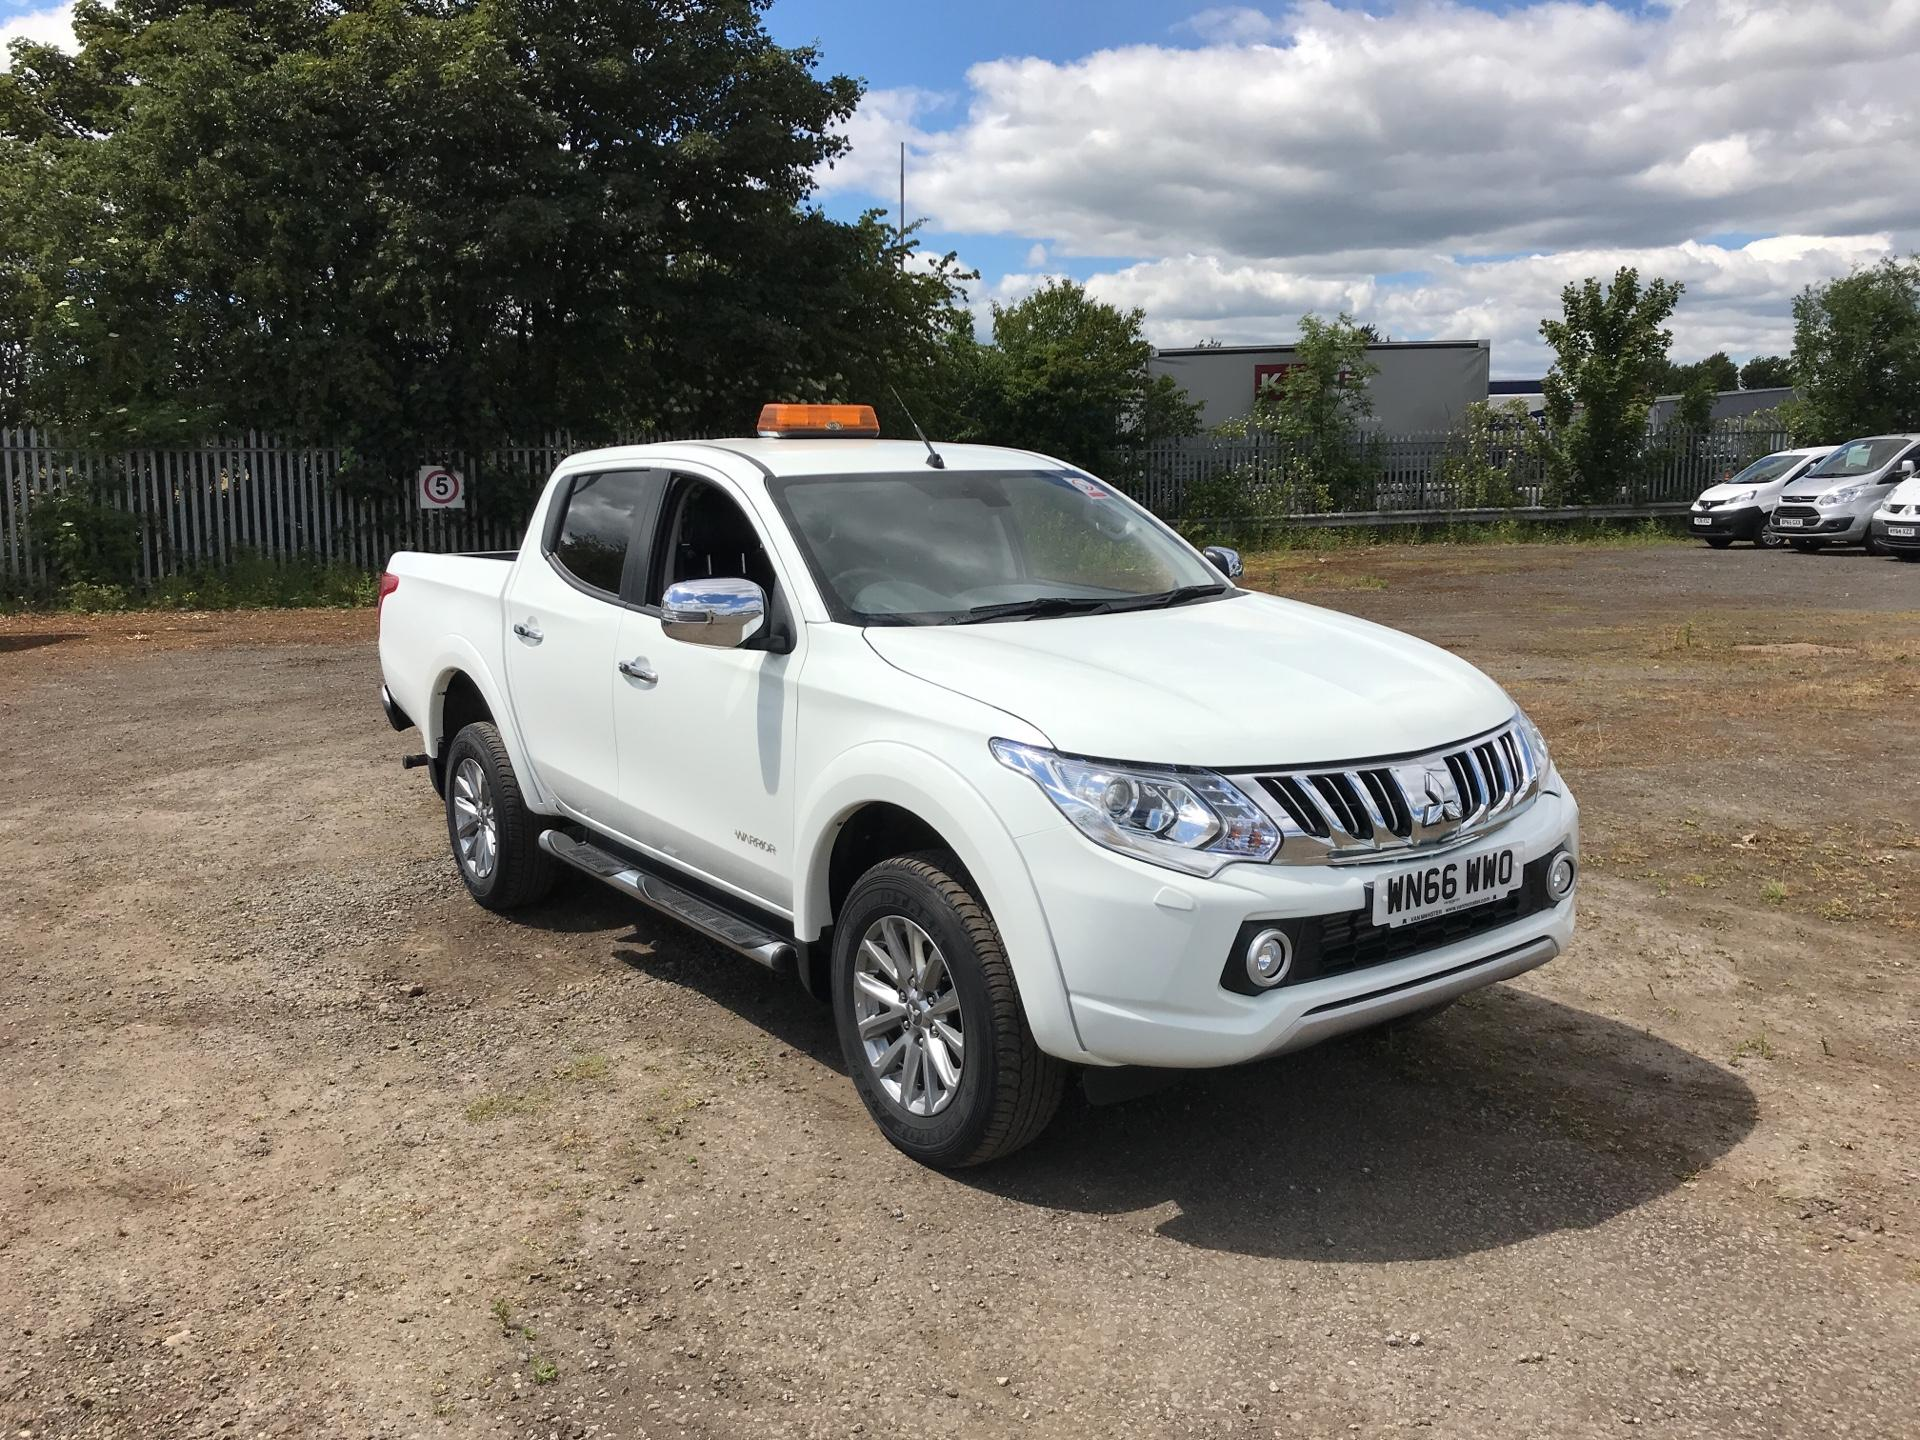 2016 Mitsubishi L200 DOUBLE CAB DI-D 178 WARRIOR 4WD AUTOMATIC (WN66WWO)